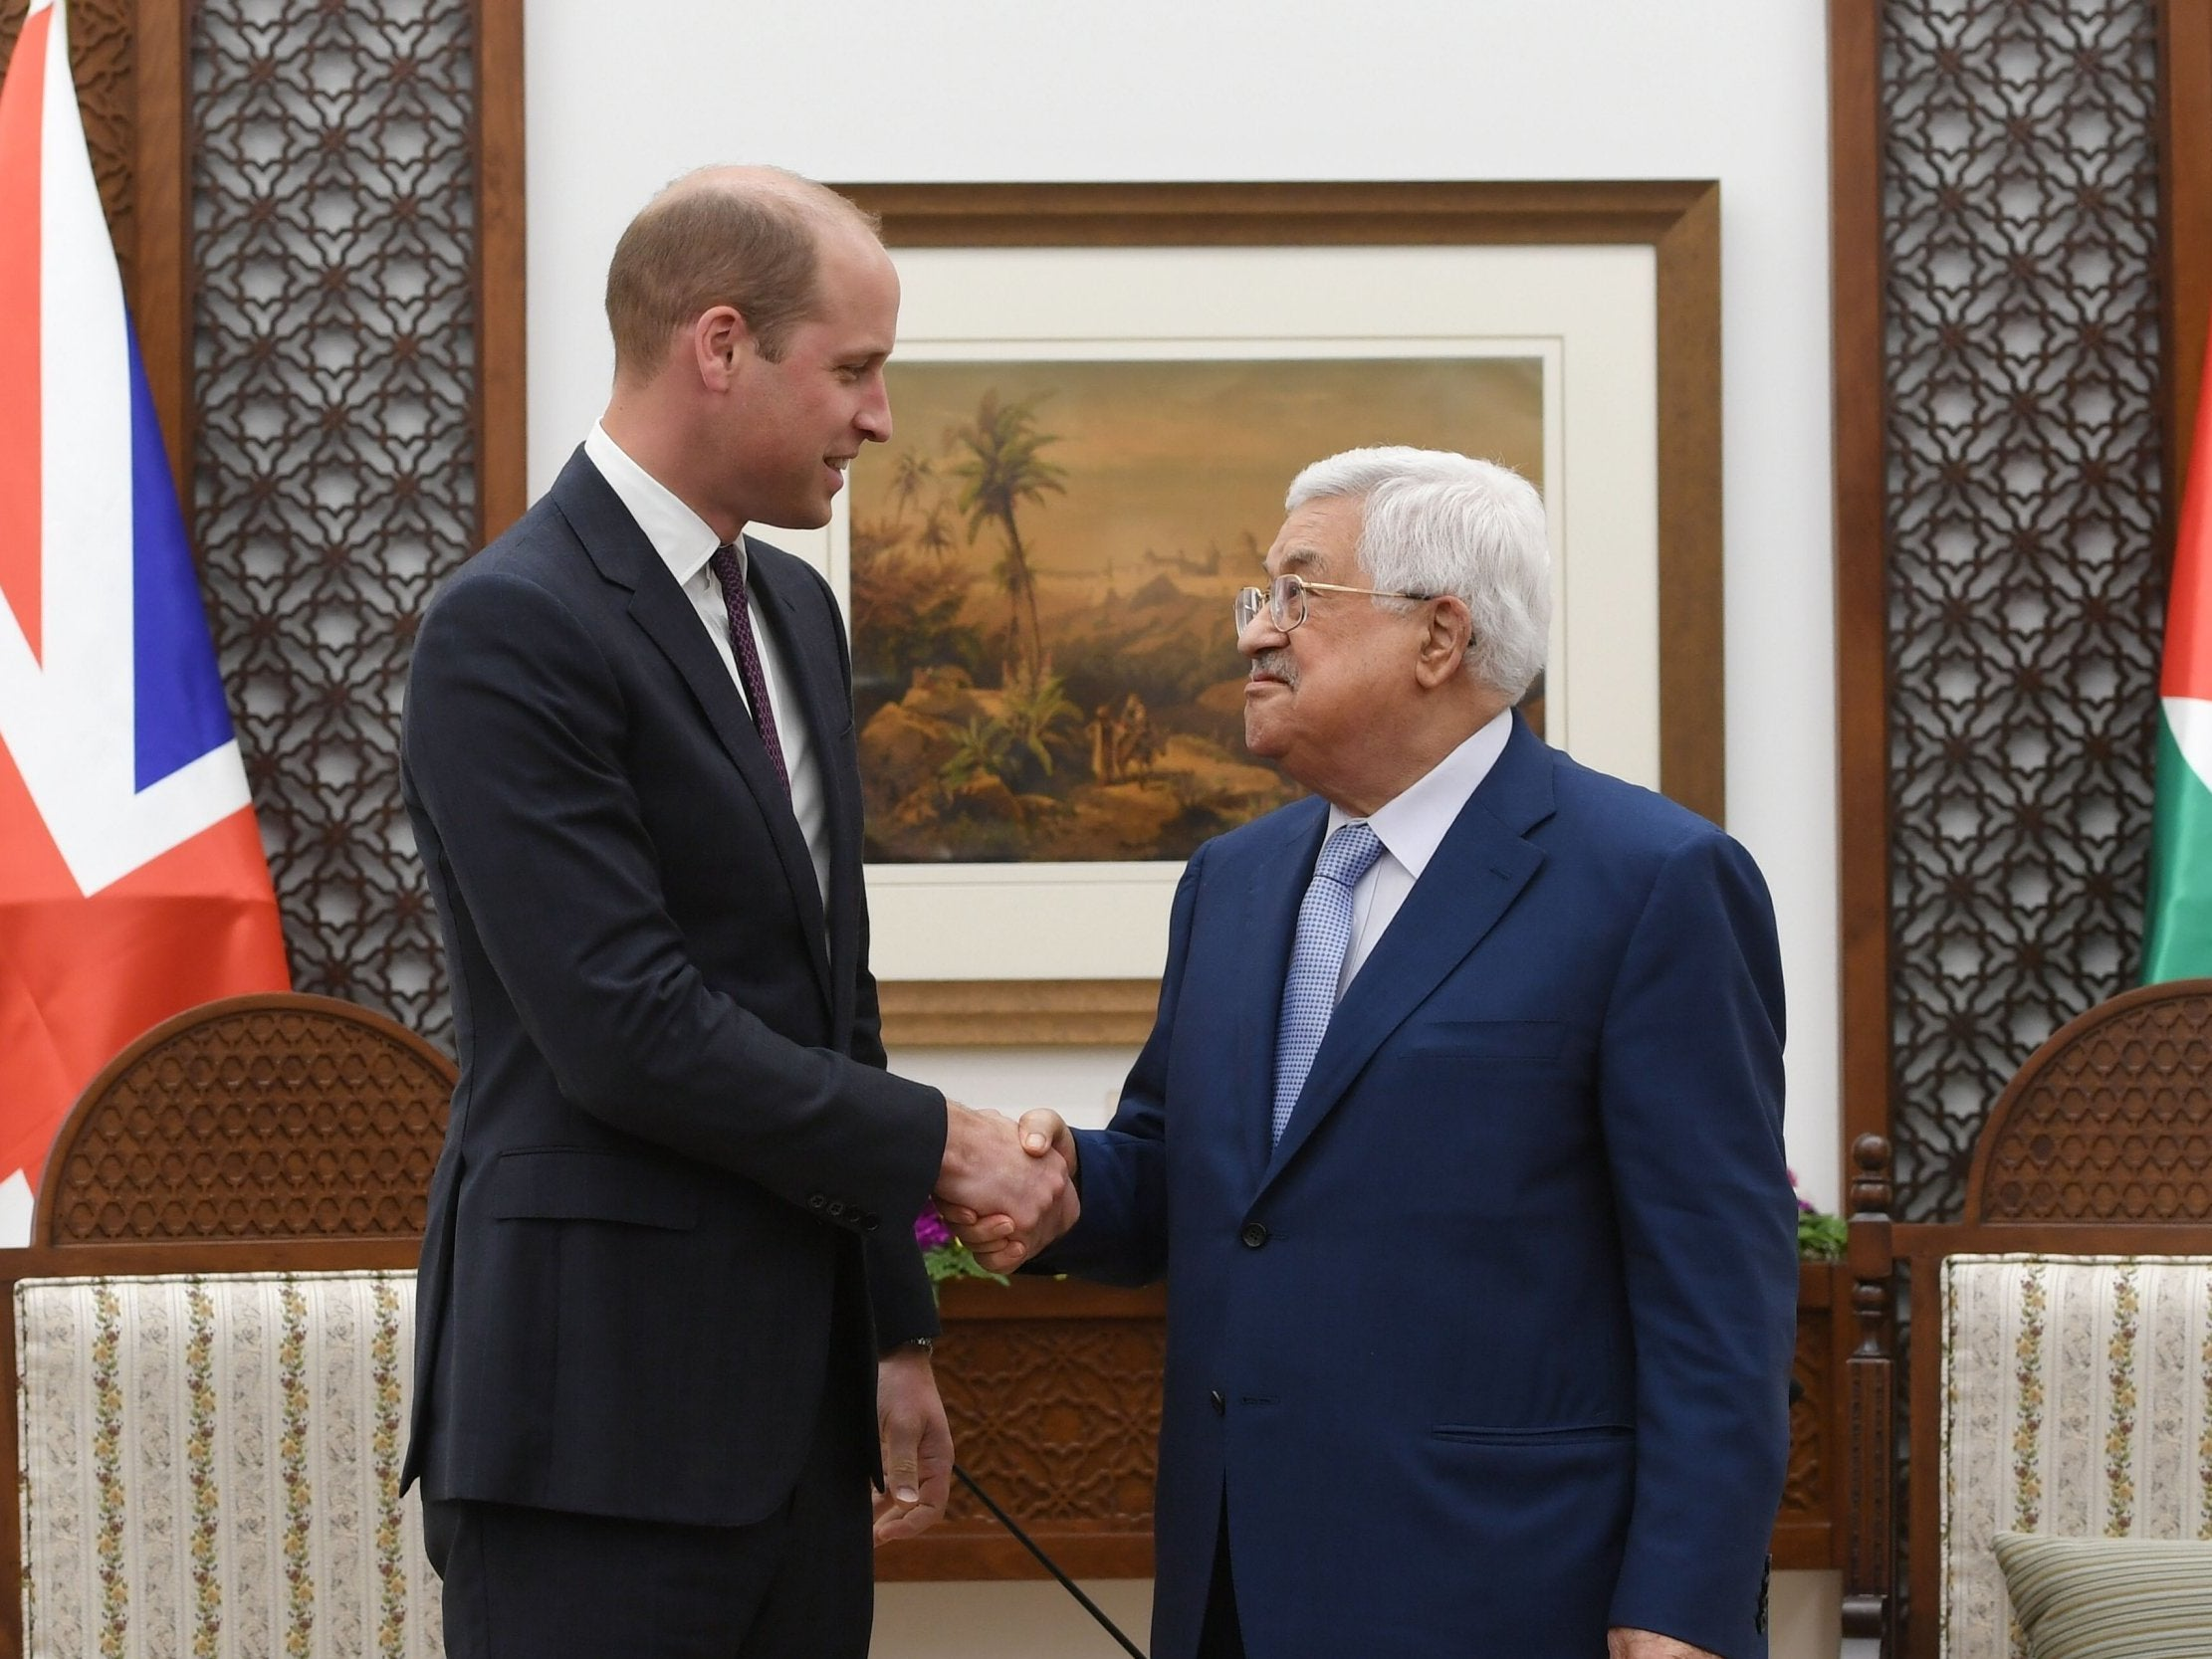 Prince William voices 'hope for lasting peace' during first ever royal visit to West Bank